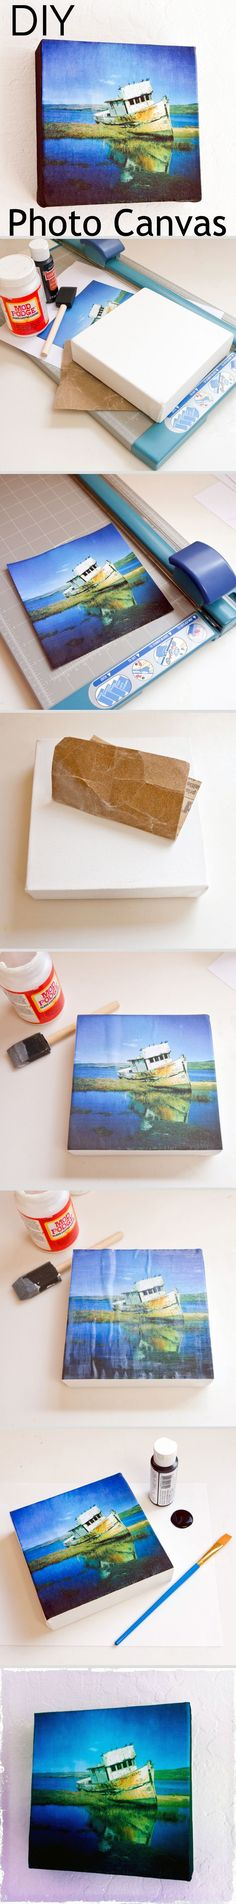 Photo Canvas DIY